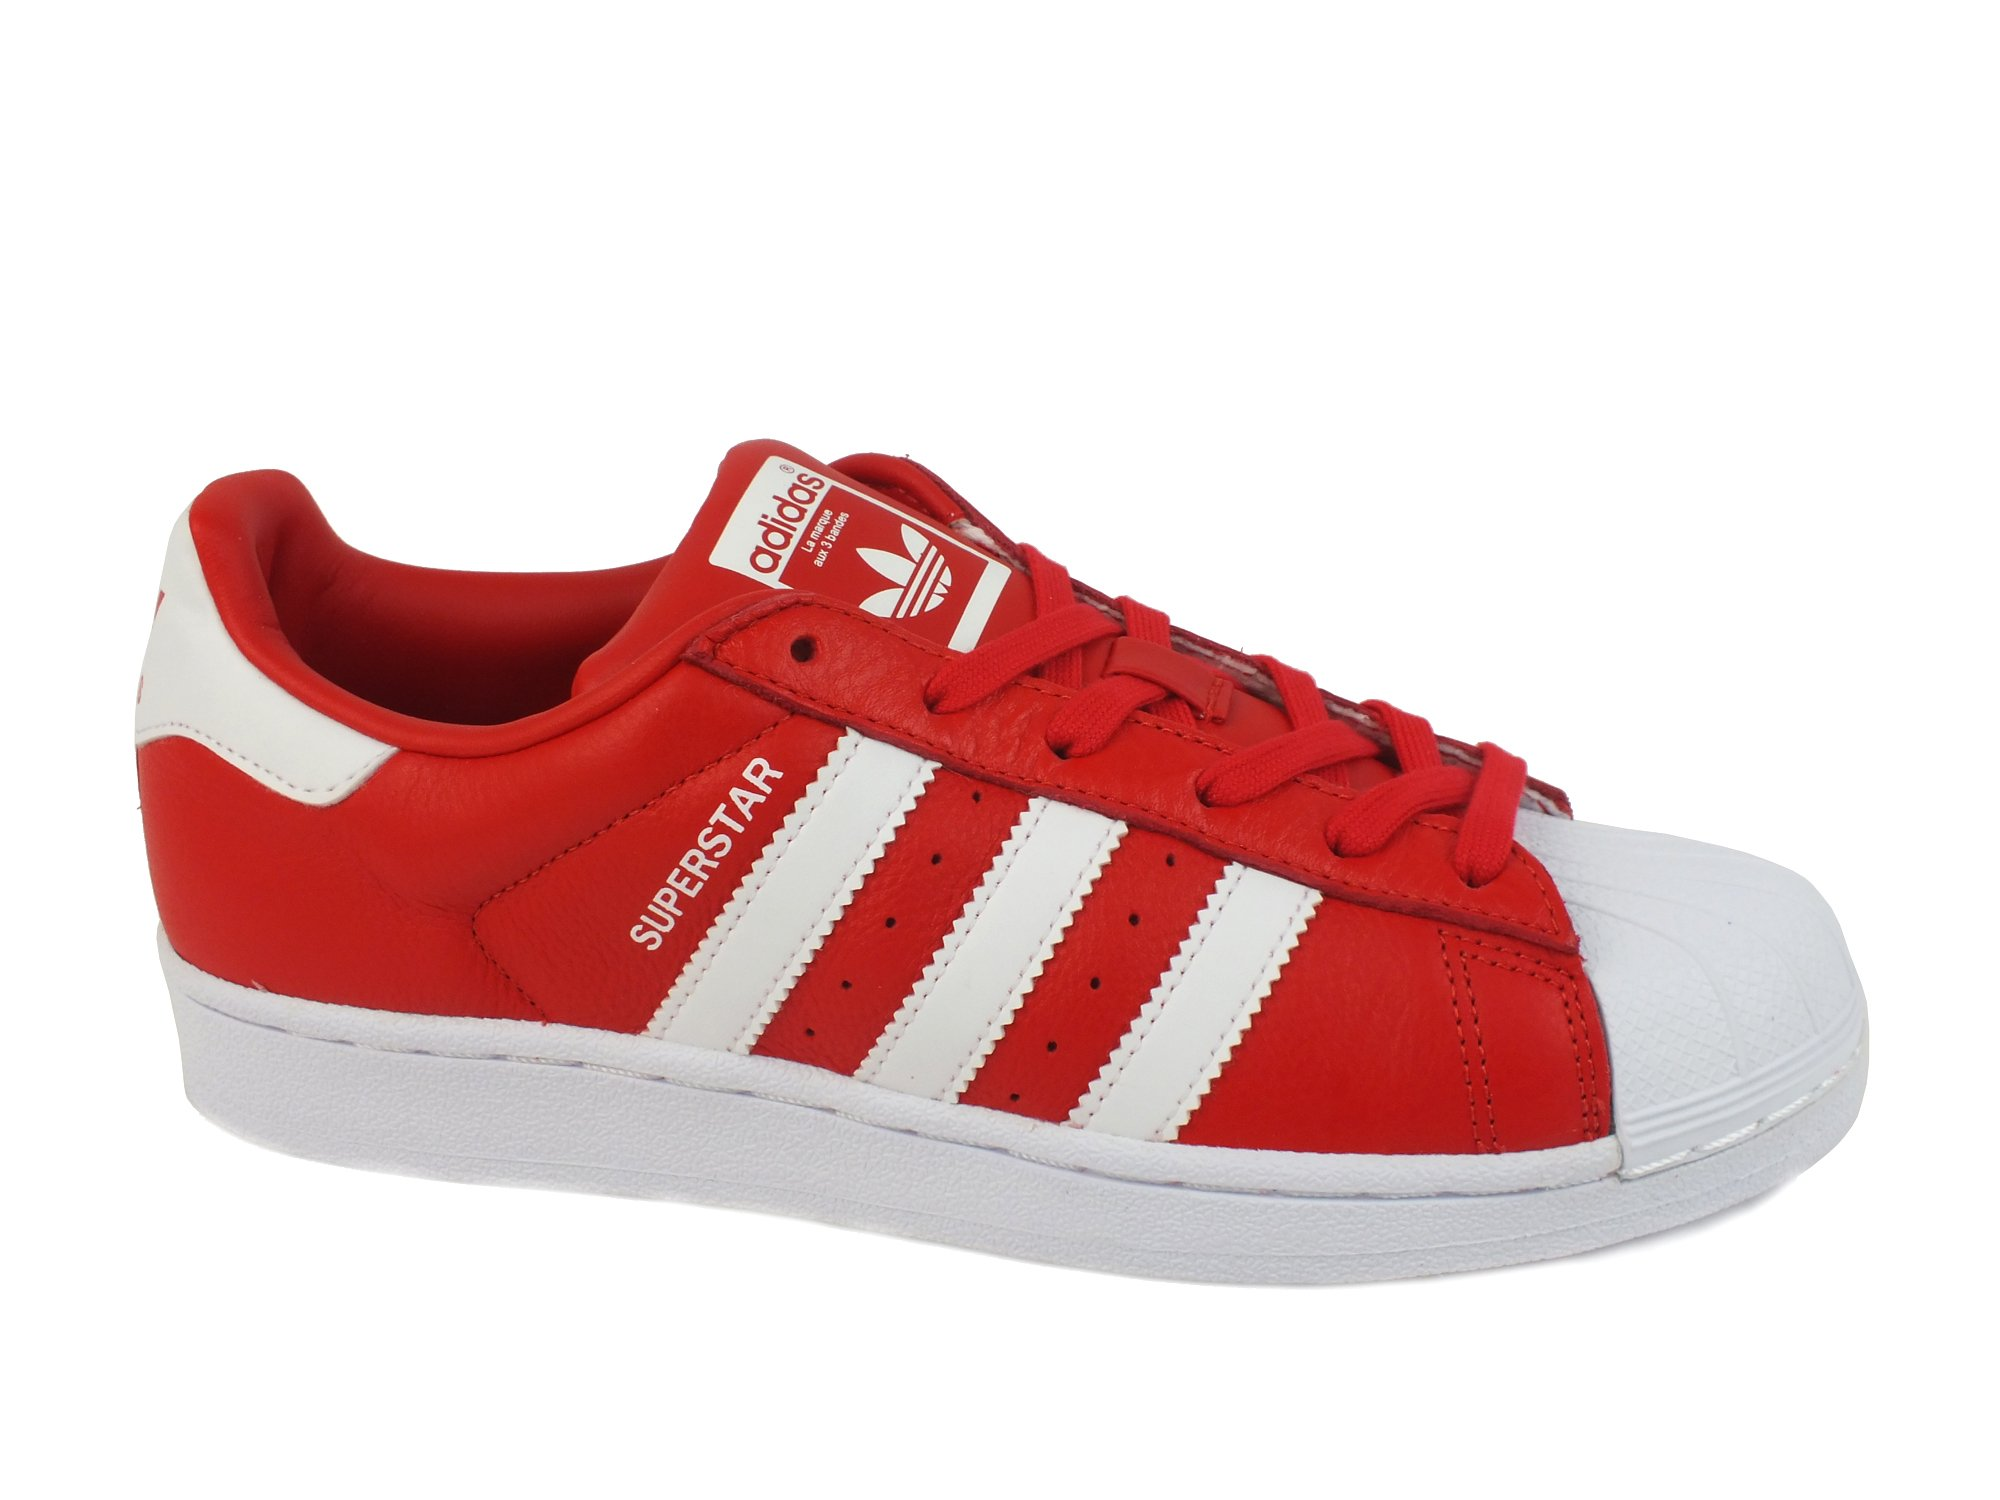 ADIDAS RED Superstar sneakers lacci adulto PELLE RED ADIDAS WHITE ROSSO BIANCO BB2240 ff1edf